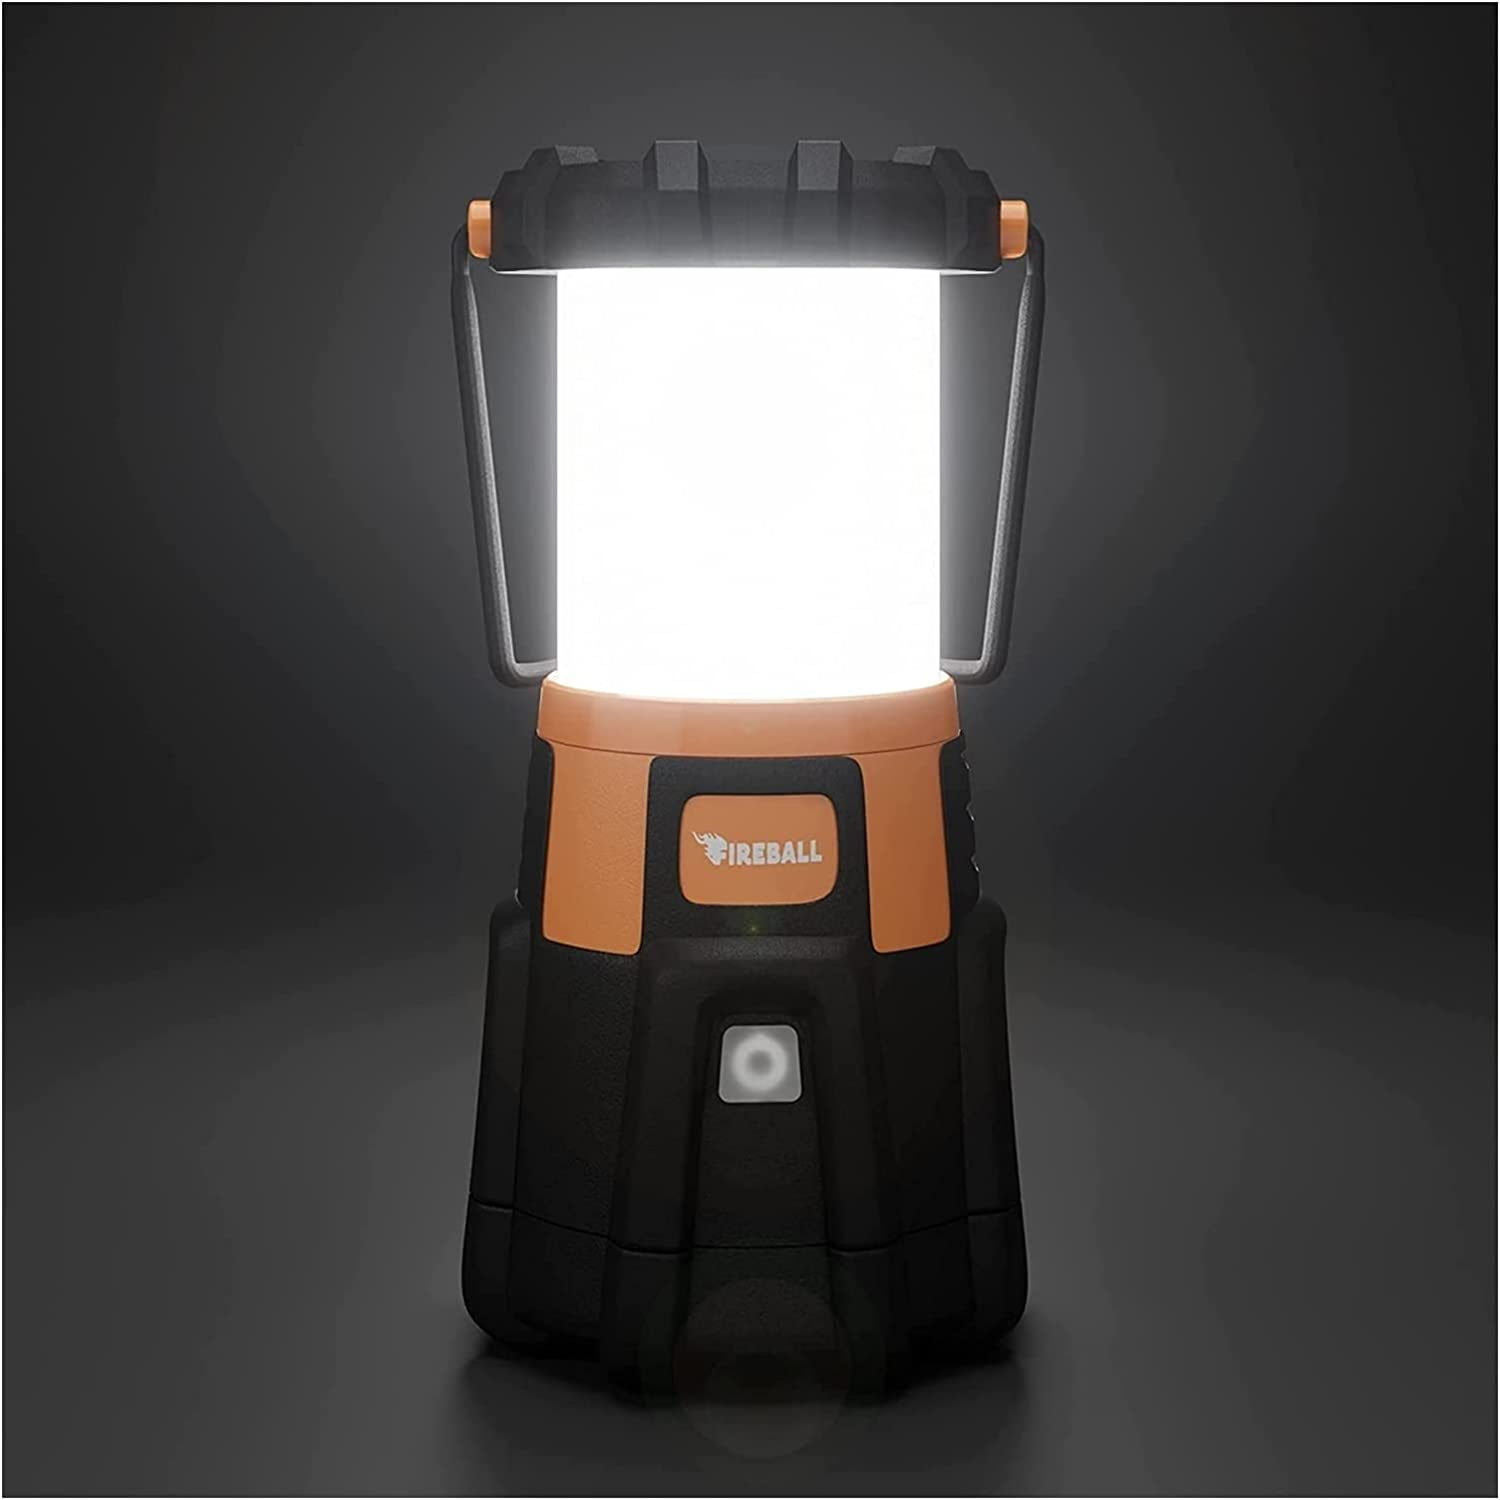 Battery Powered Lantern 1000 New York Mall Lumen LED Emergency Brightest Limited time trial price Ca